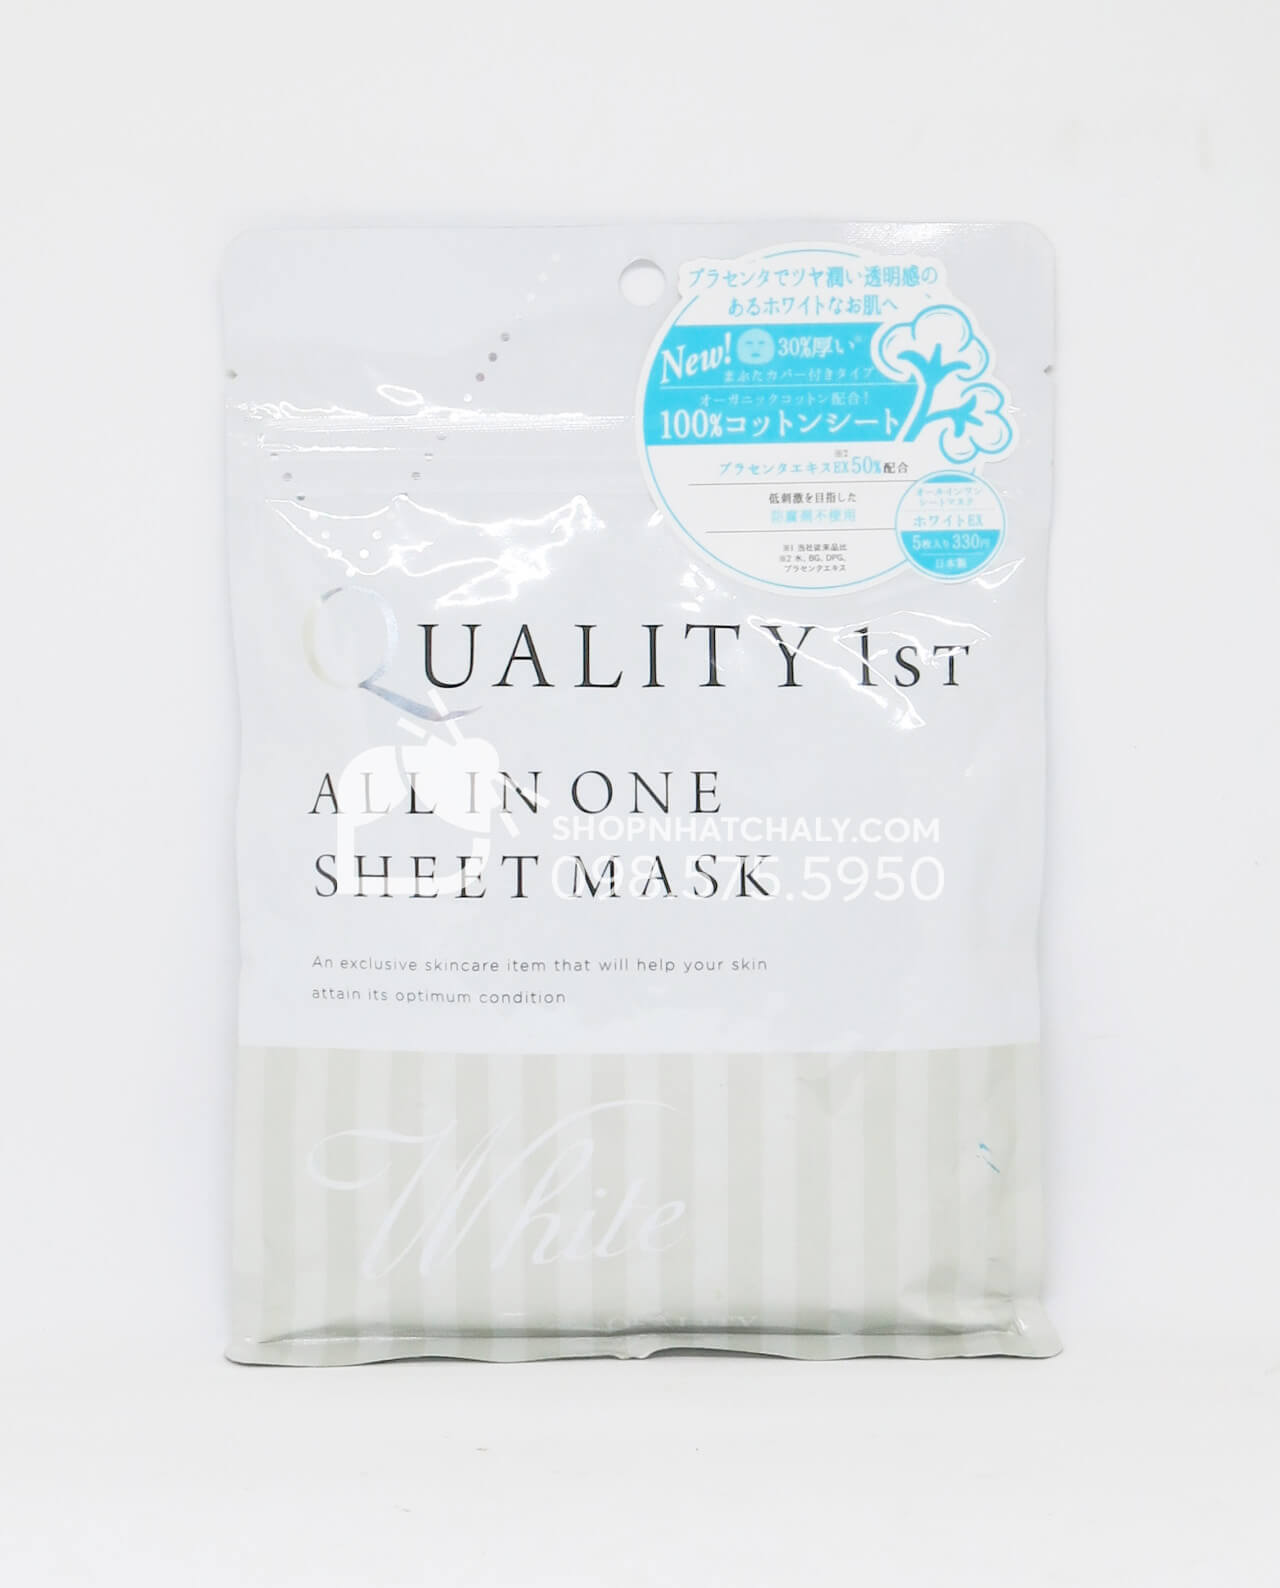 Mặt nạ Quality 1st All in One Sheet Mask trắng mẫu mới 2017